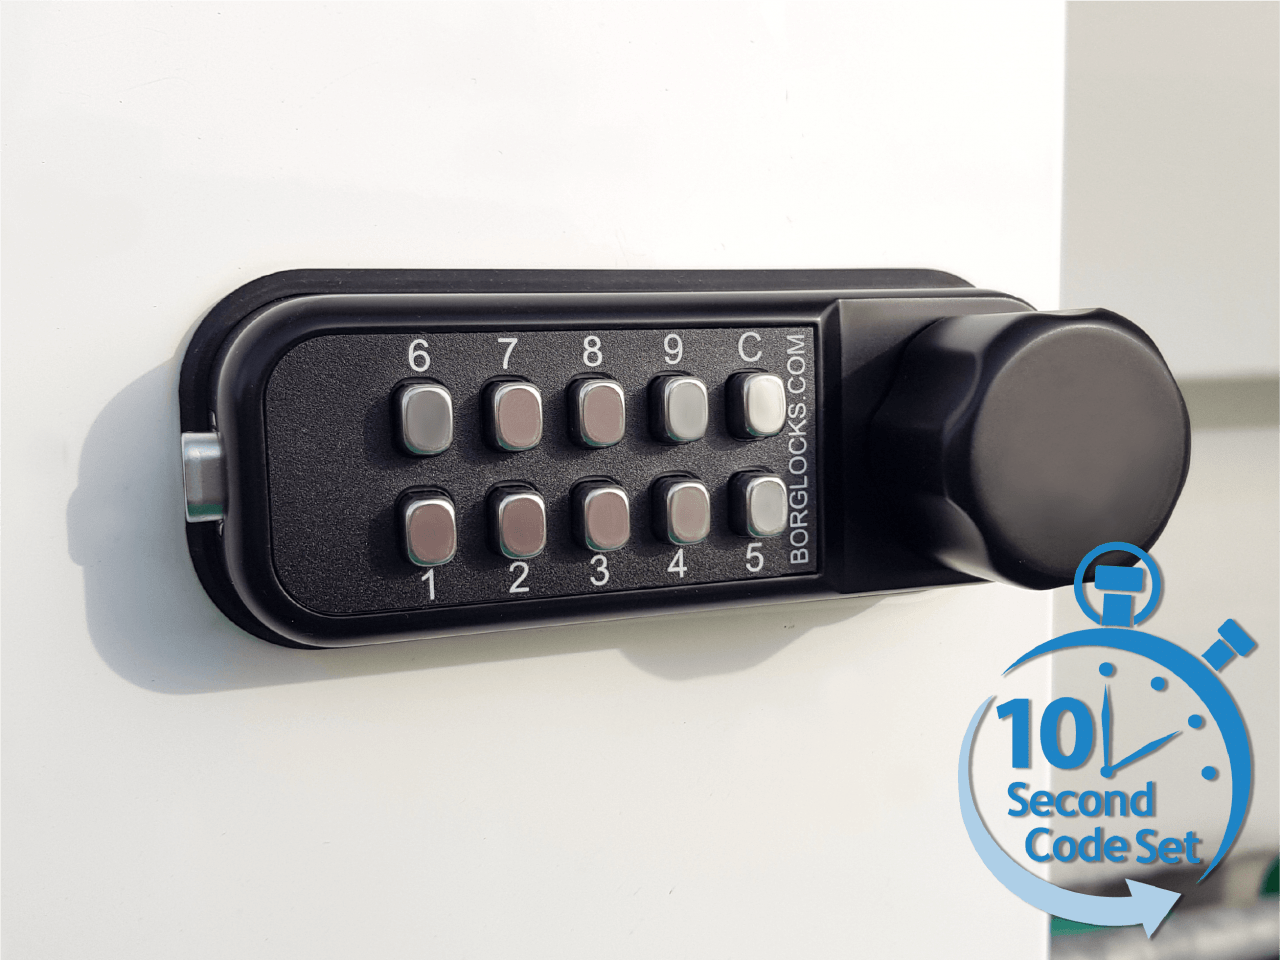 cabinet locks from Borg Locks keep your valuables safe at home, work or in the gym